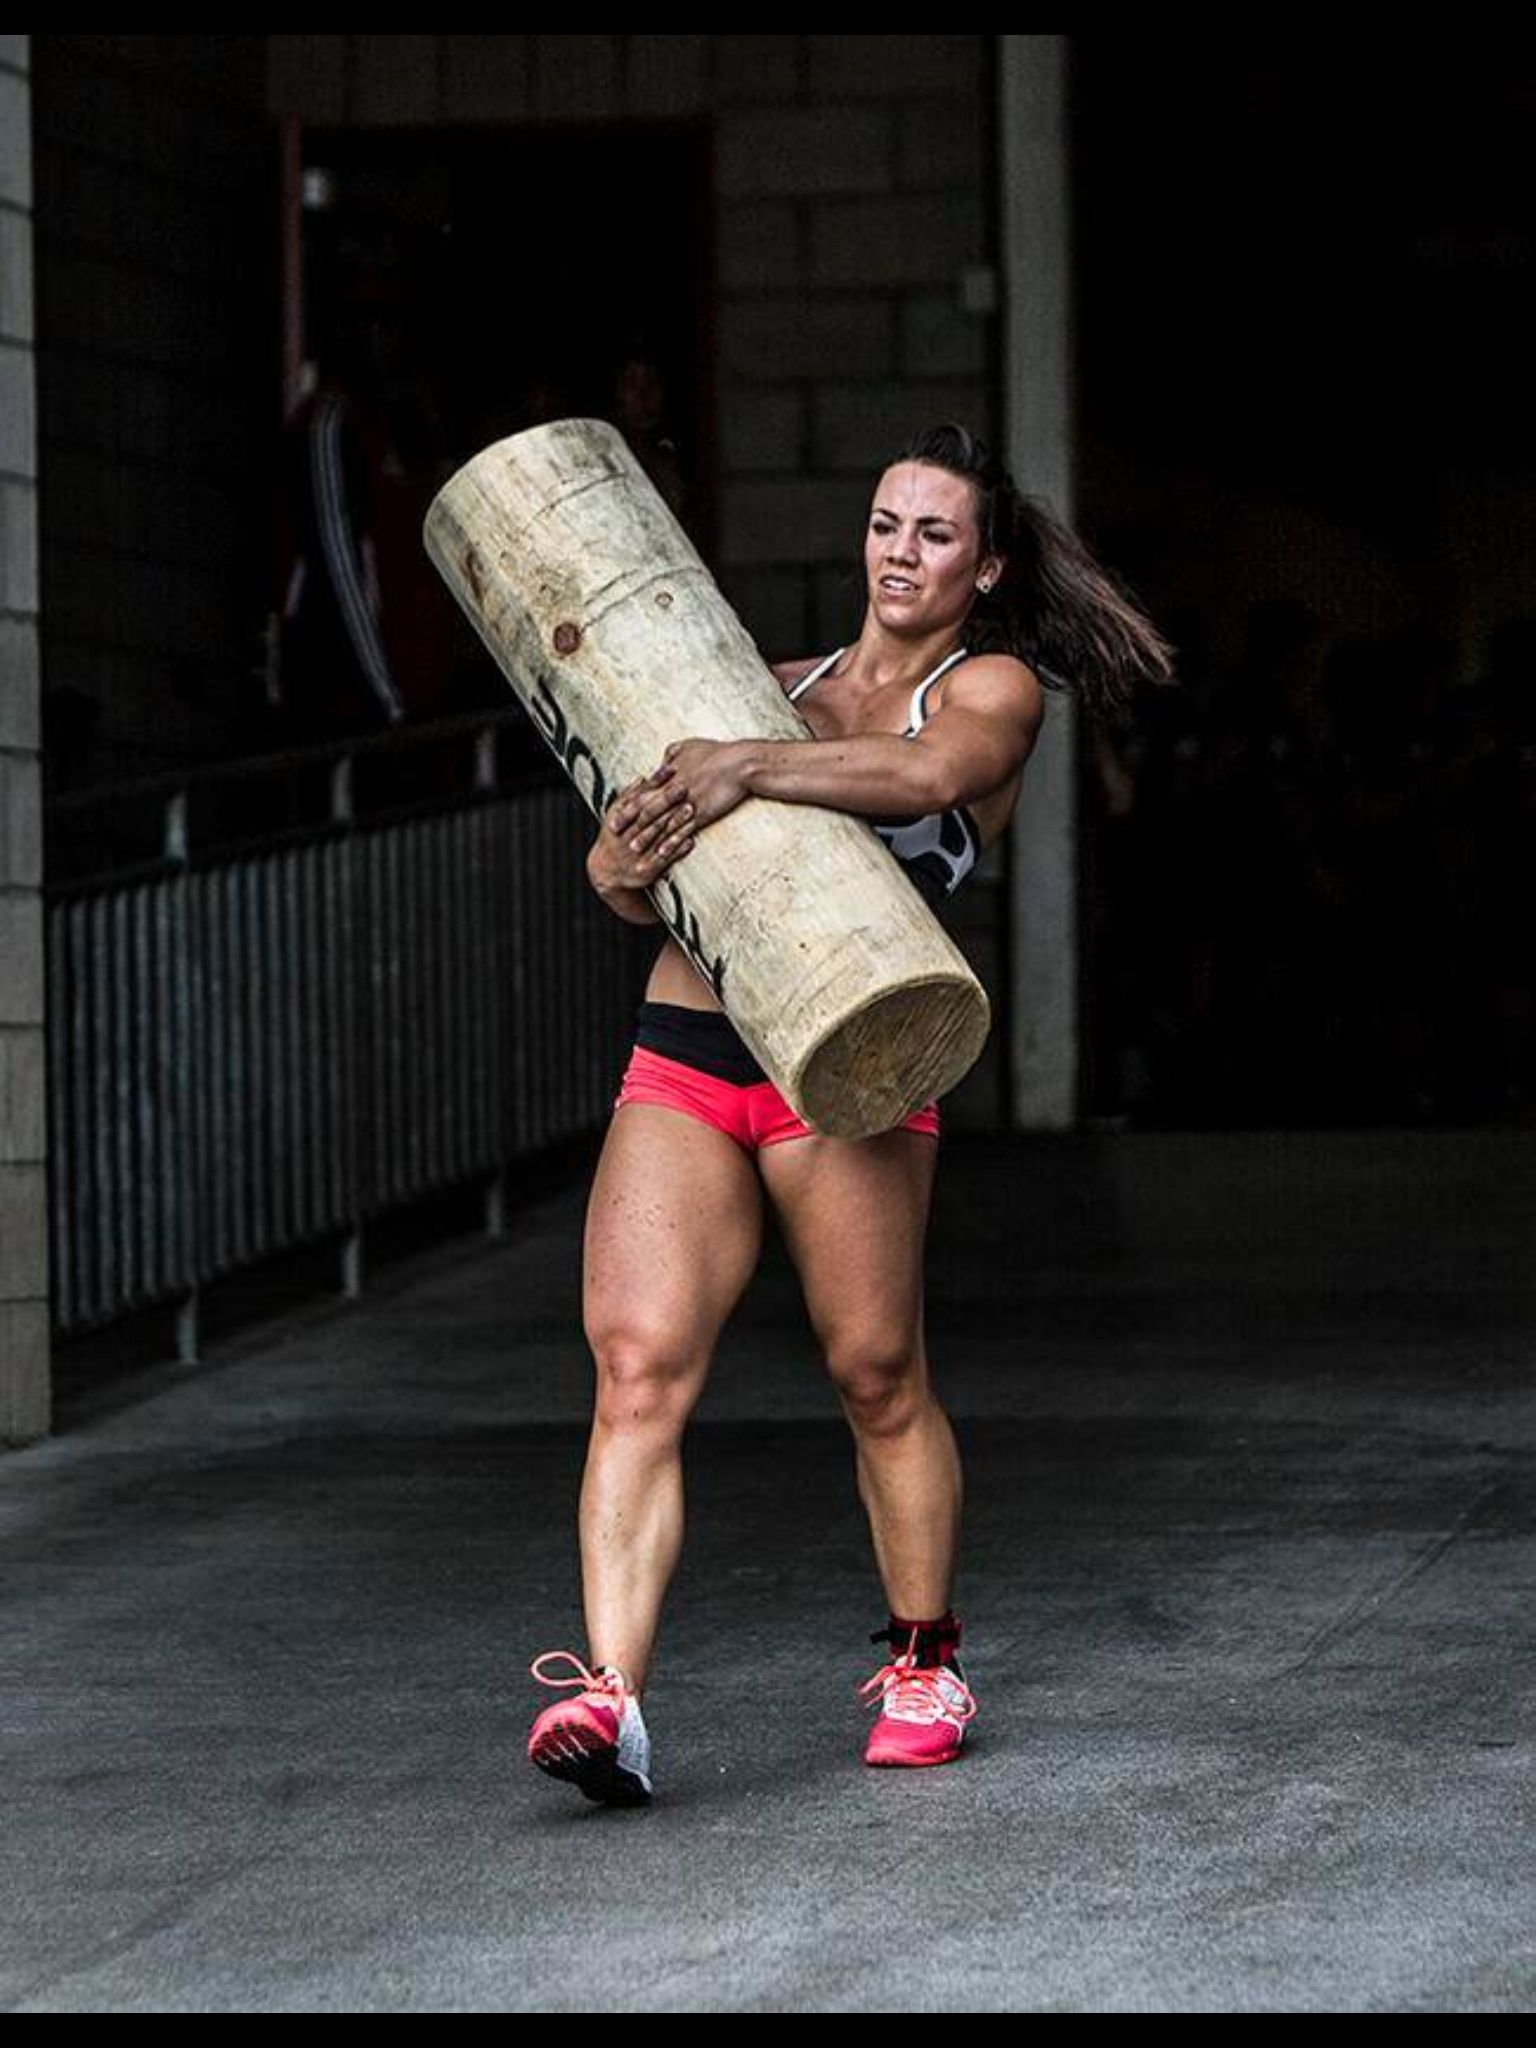 Crossfit Camille Leblanc-Bazinet  Look Good Naked-1478